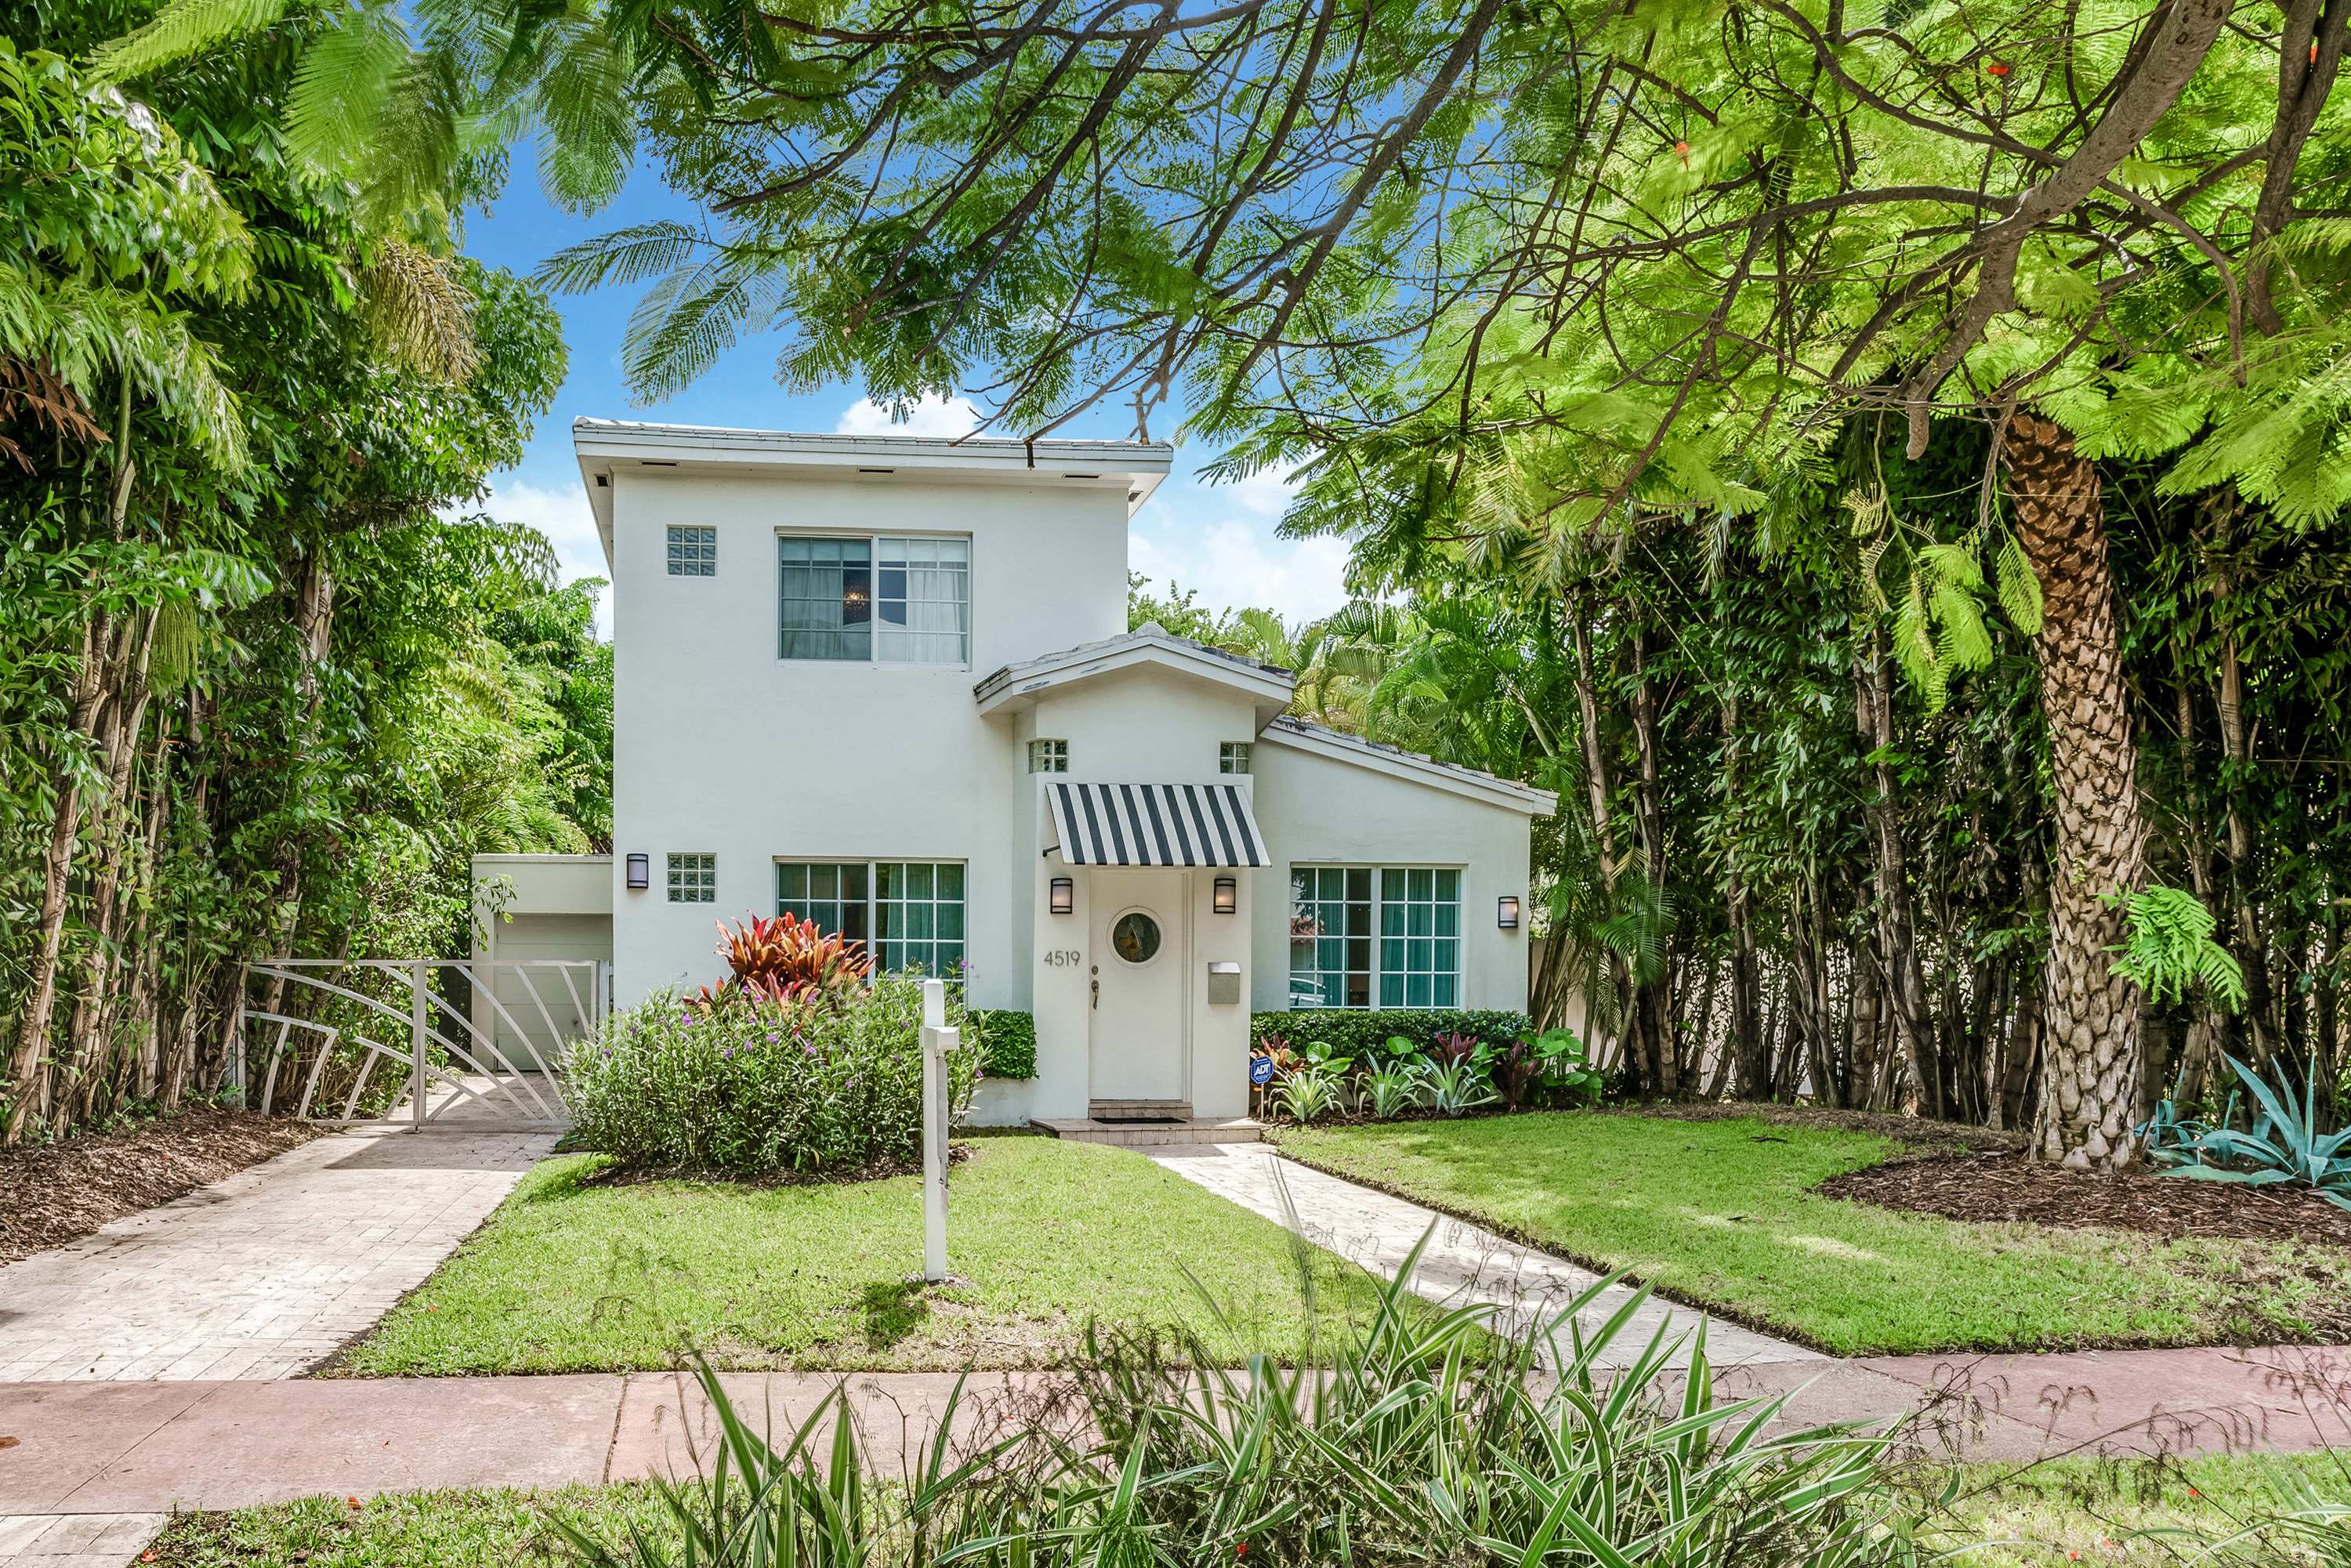 Single Family Home for Sale at 4519 Royal Palm Ave Miami Beach, Florida, 33140 United States